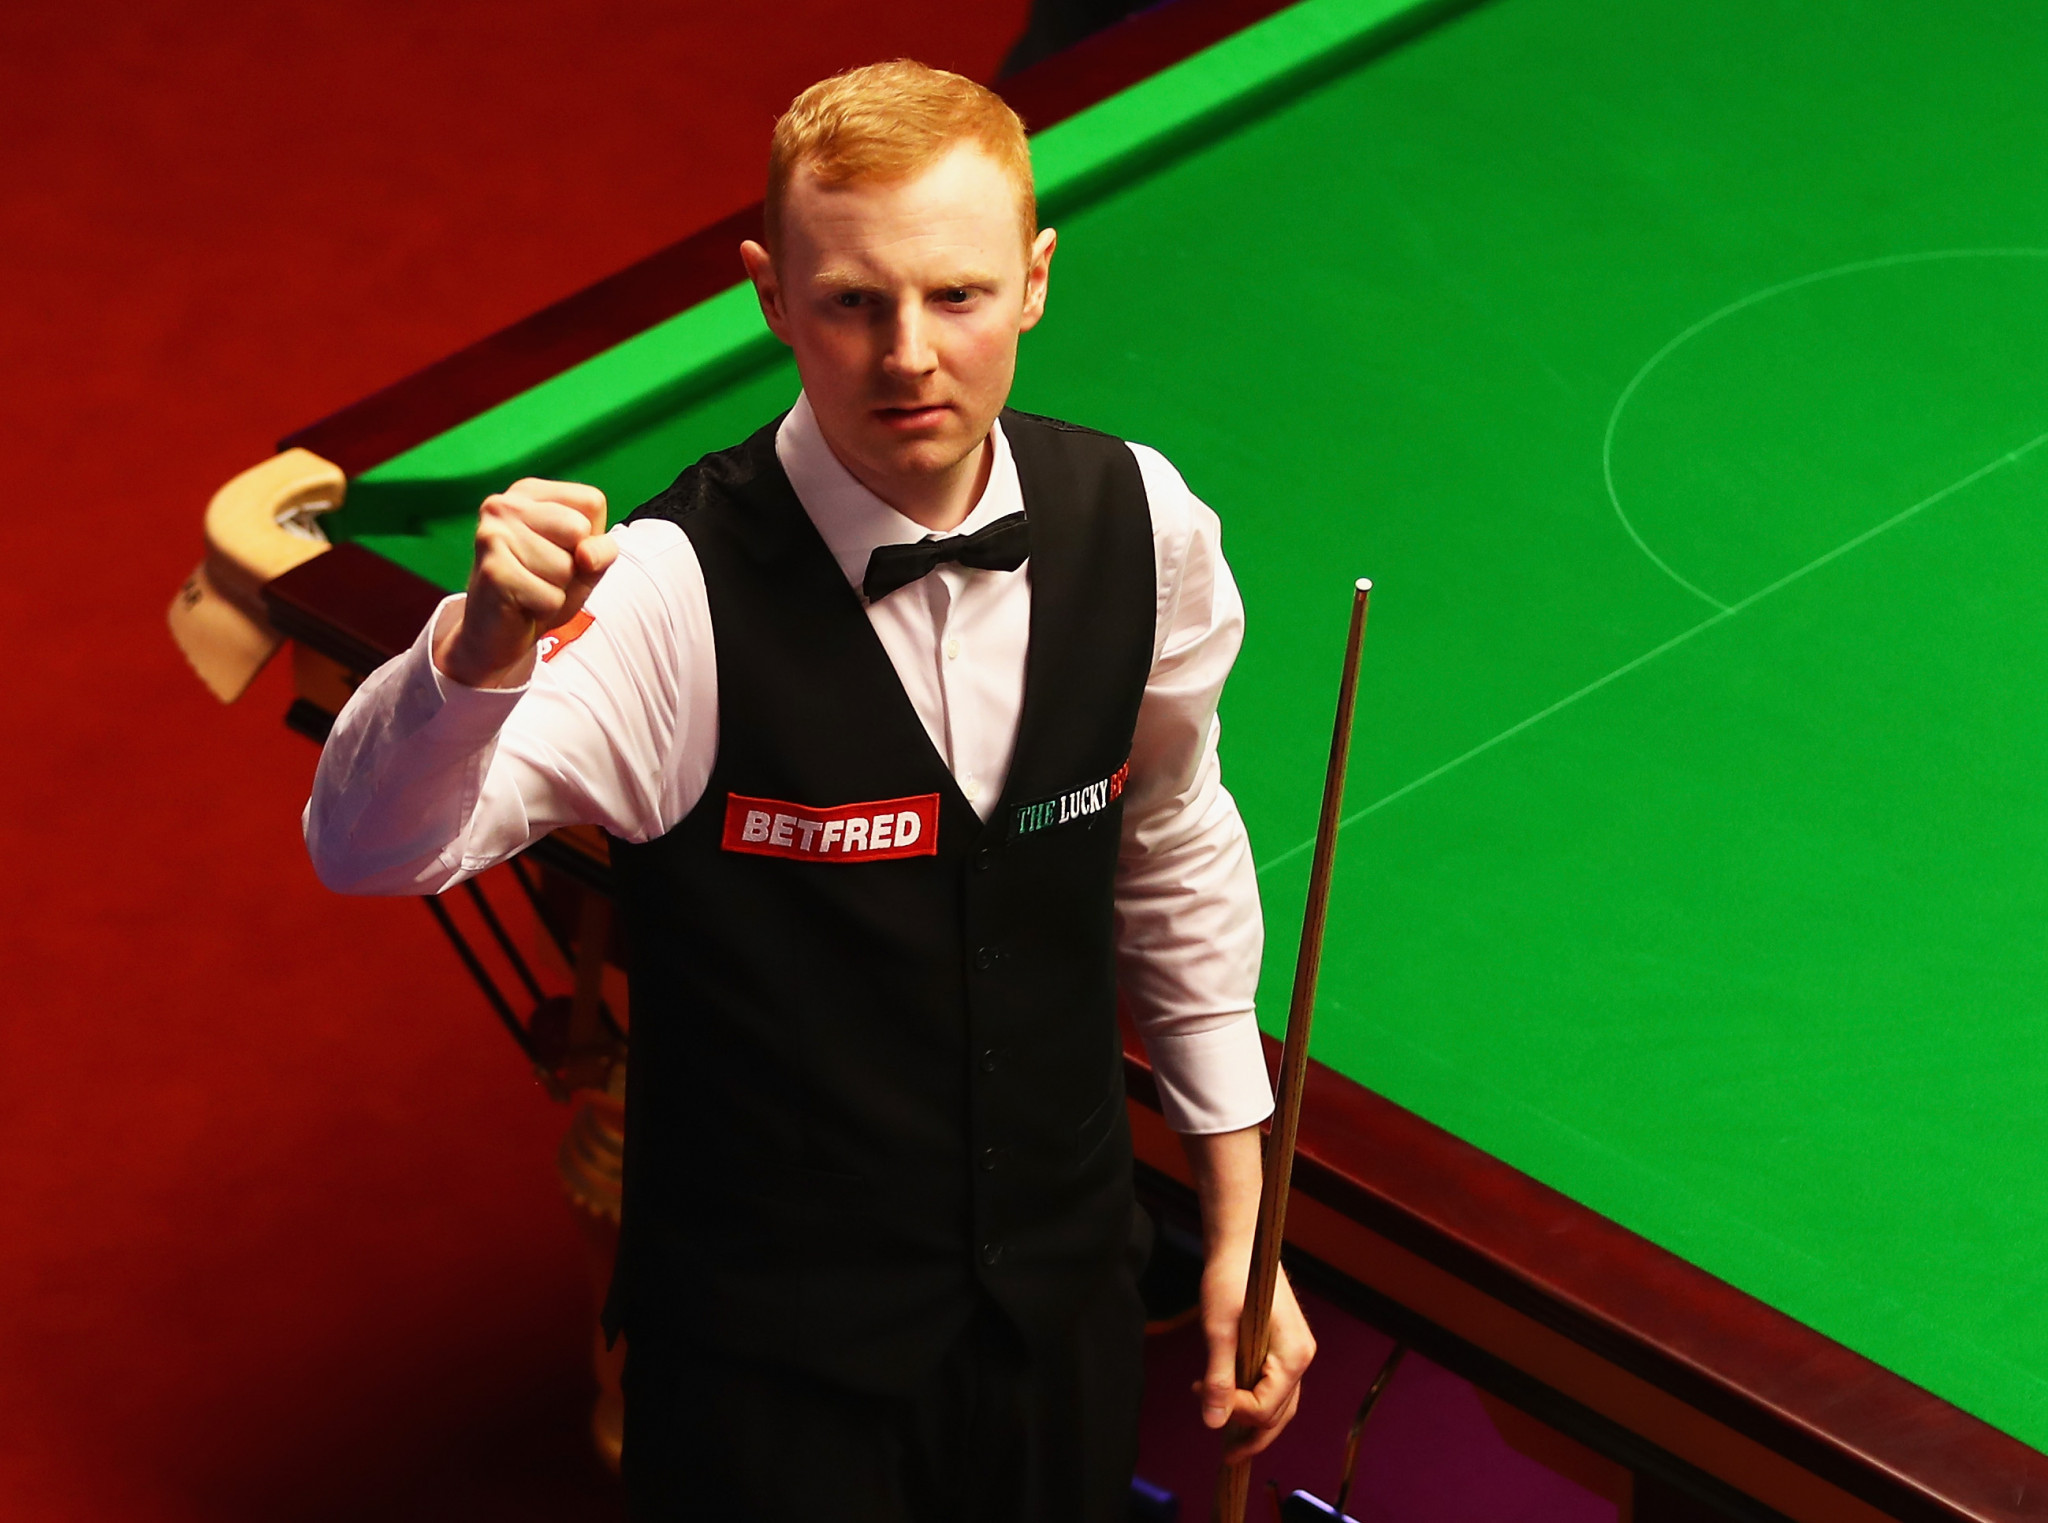 Qualifier McGill recovers from brink of defeat to win dramatic decider at World Snooker Championship